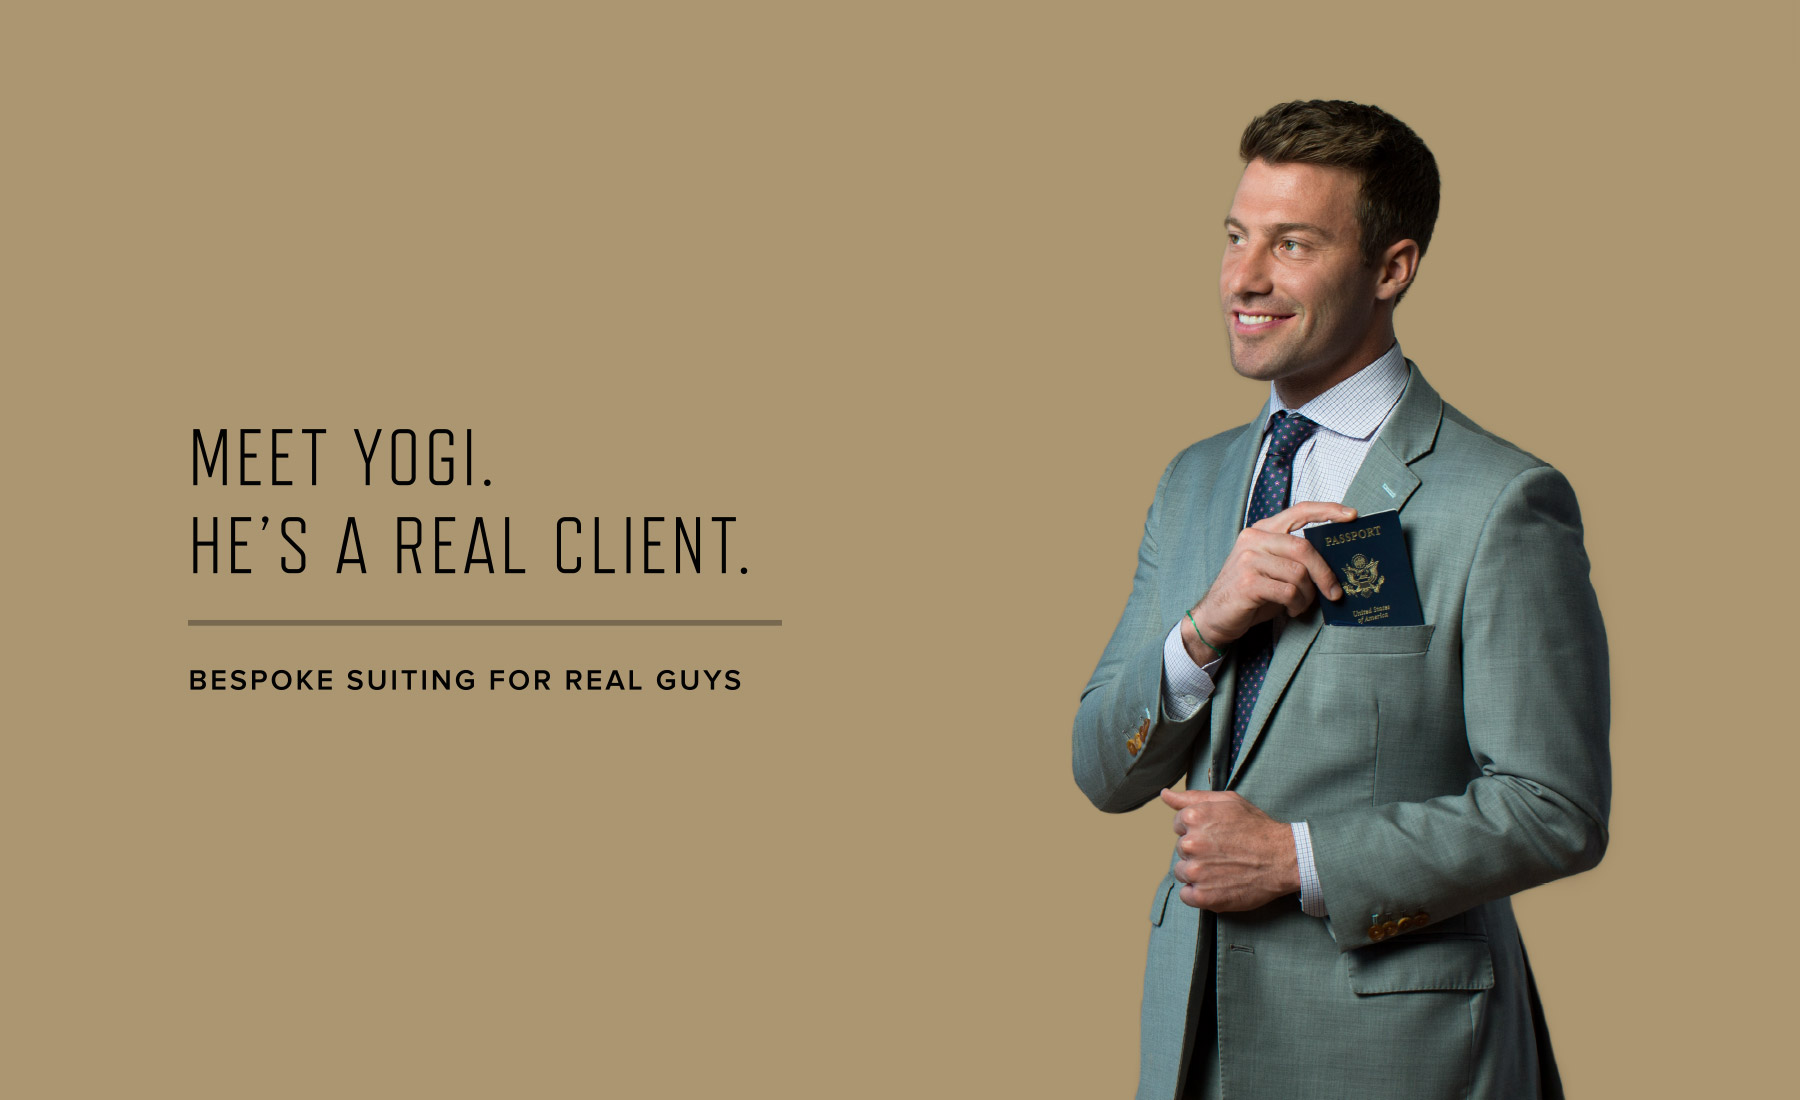 Bespoke suiting company for real guys